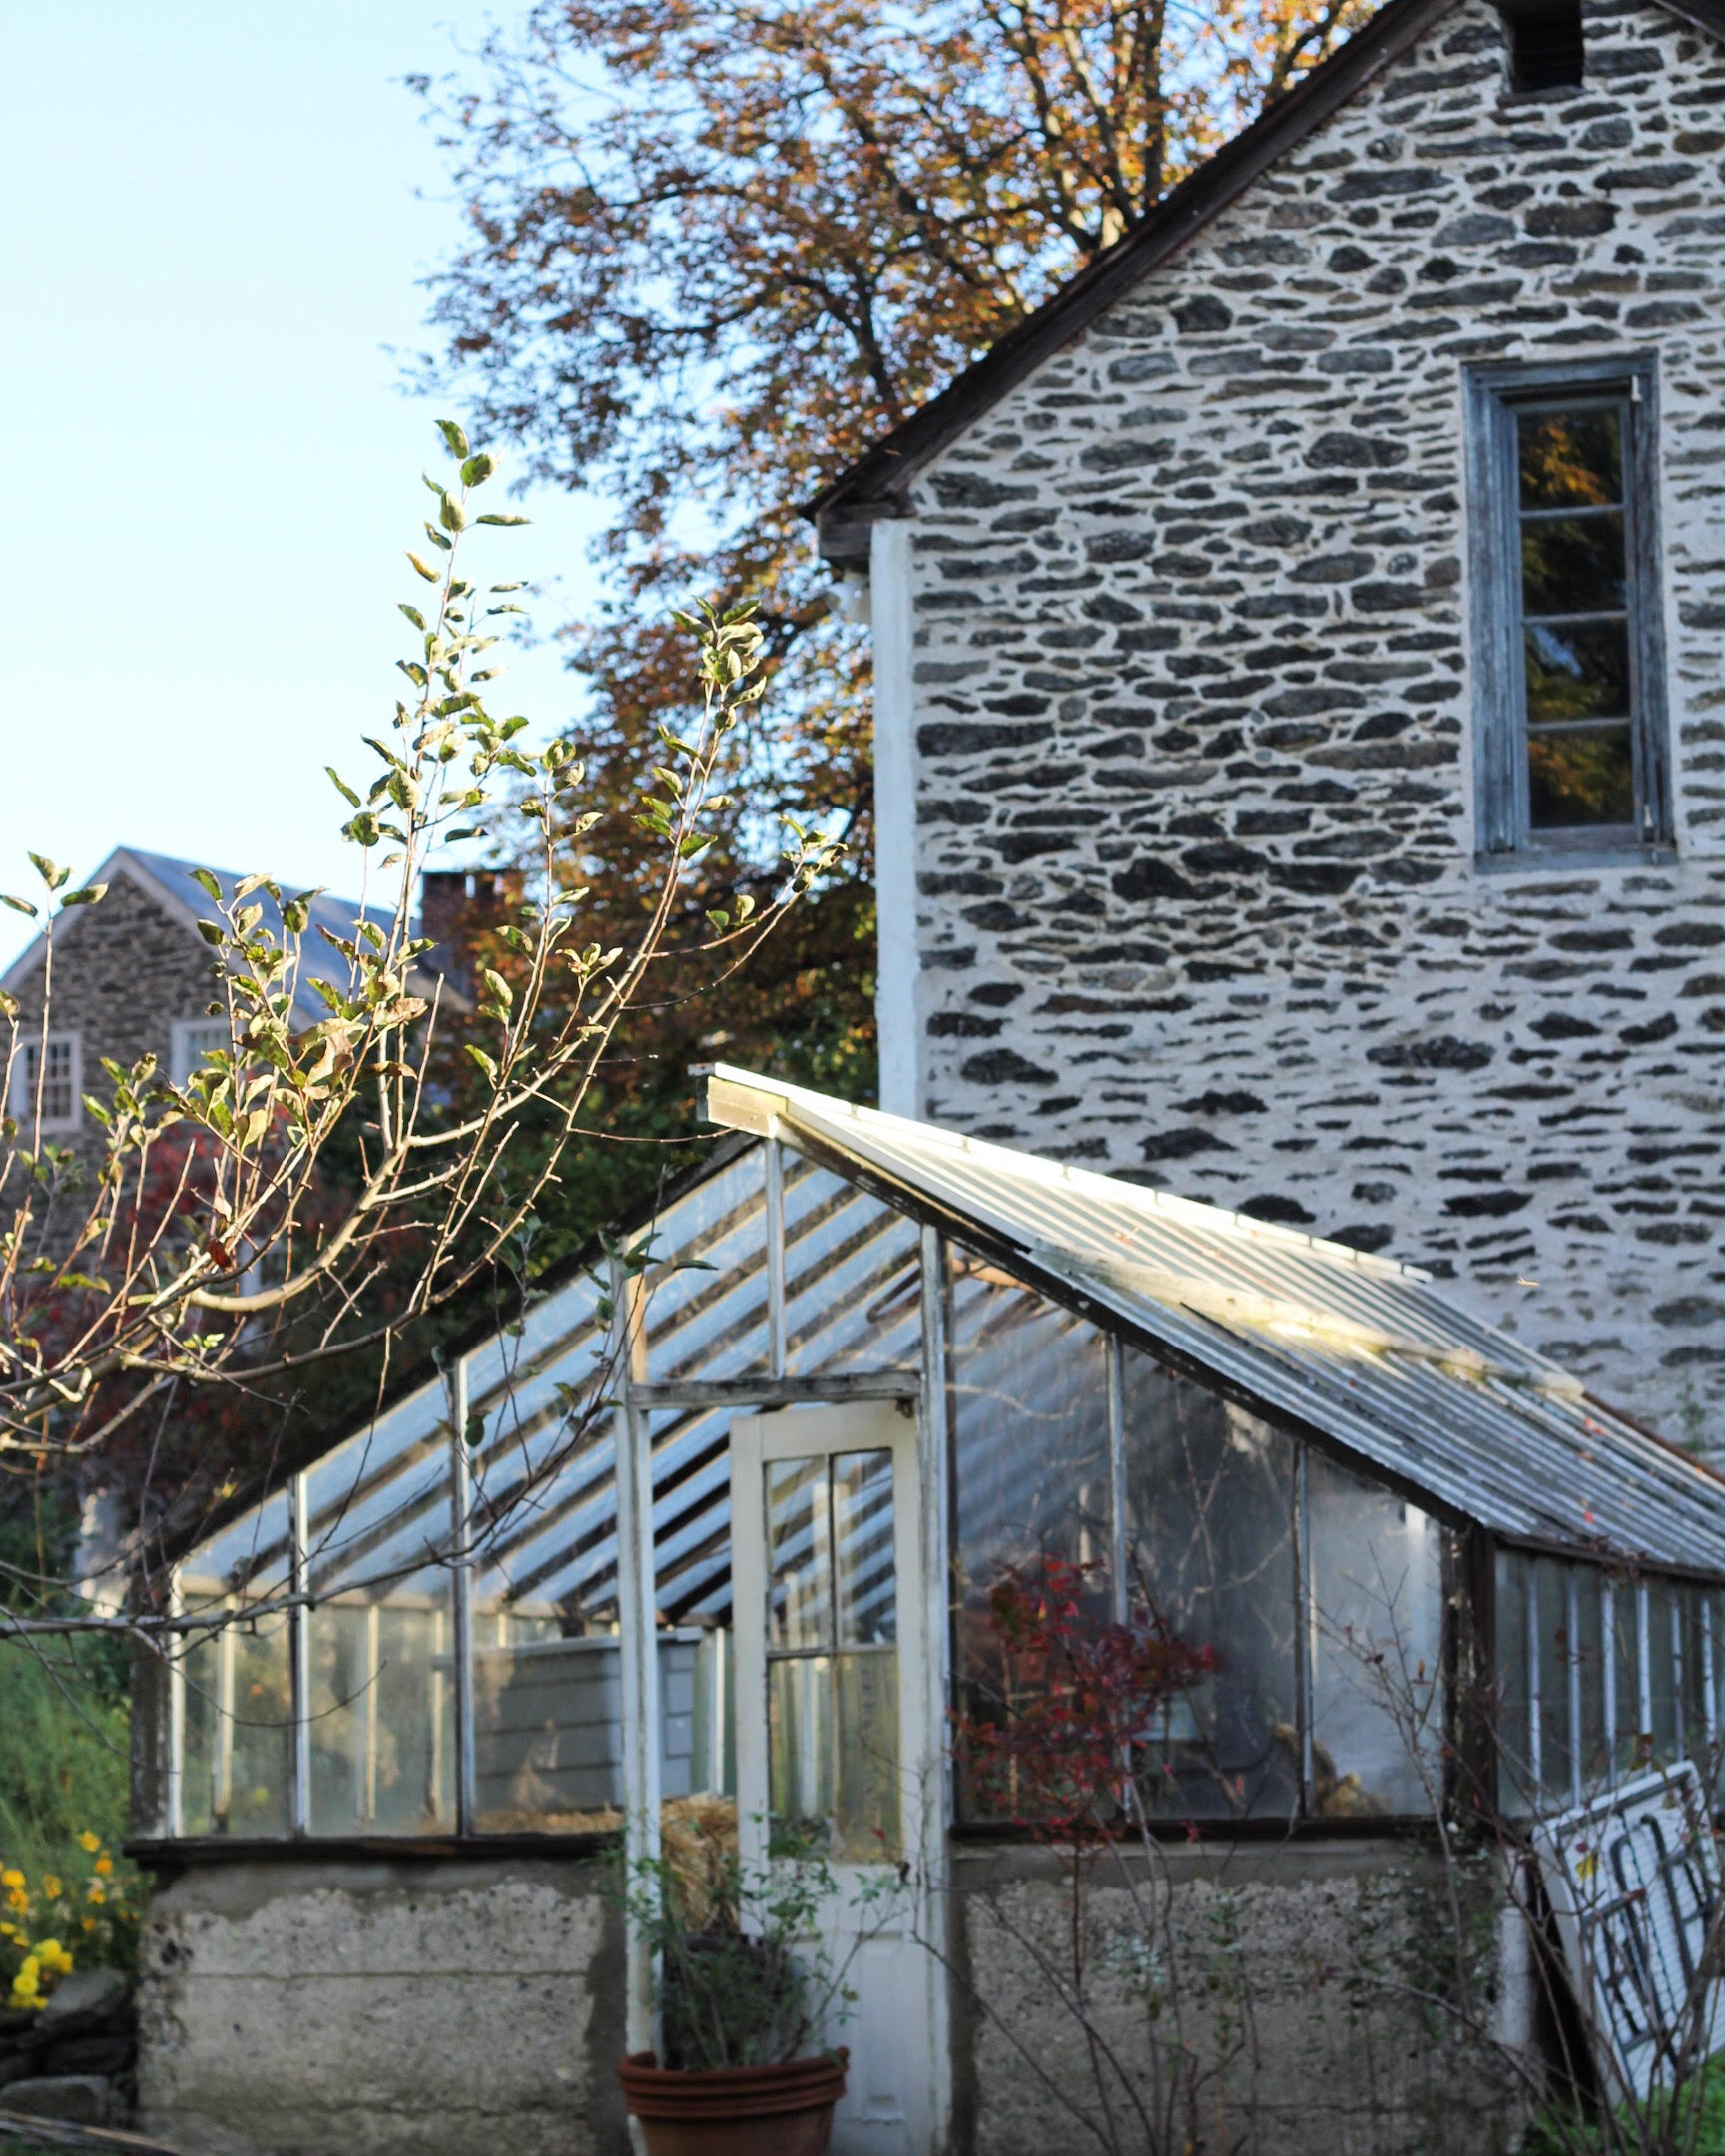 The 1914 greenhouse in front of the 1790s coach house